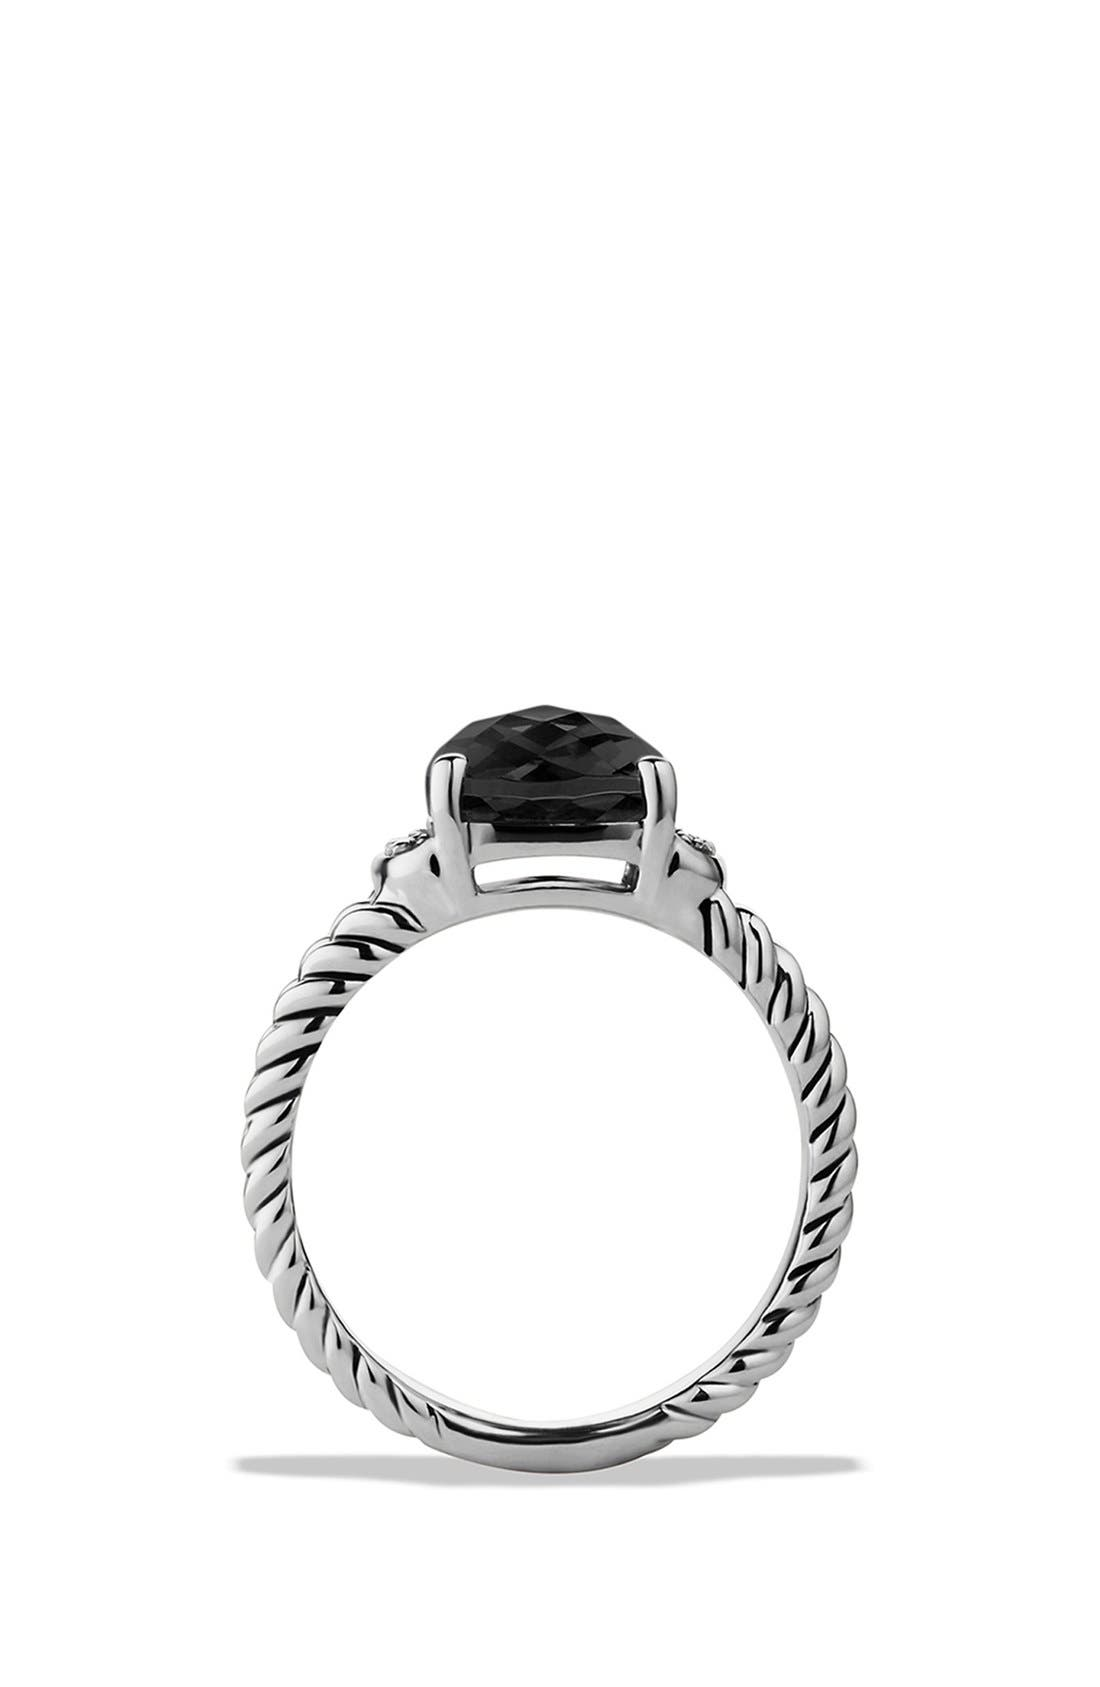 'Wheaton' Petite Ring with Semiprecious Stone & Diamonds,                             Alternate thumbnail 5, color,                             BLACK ONYX